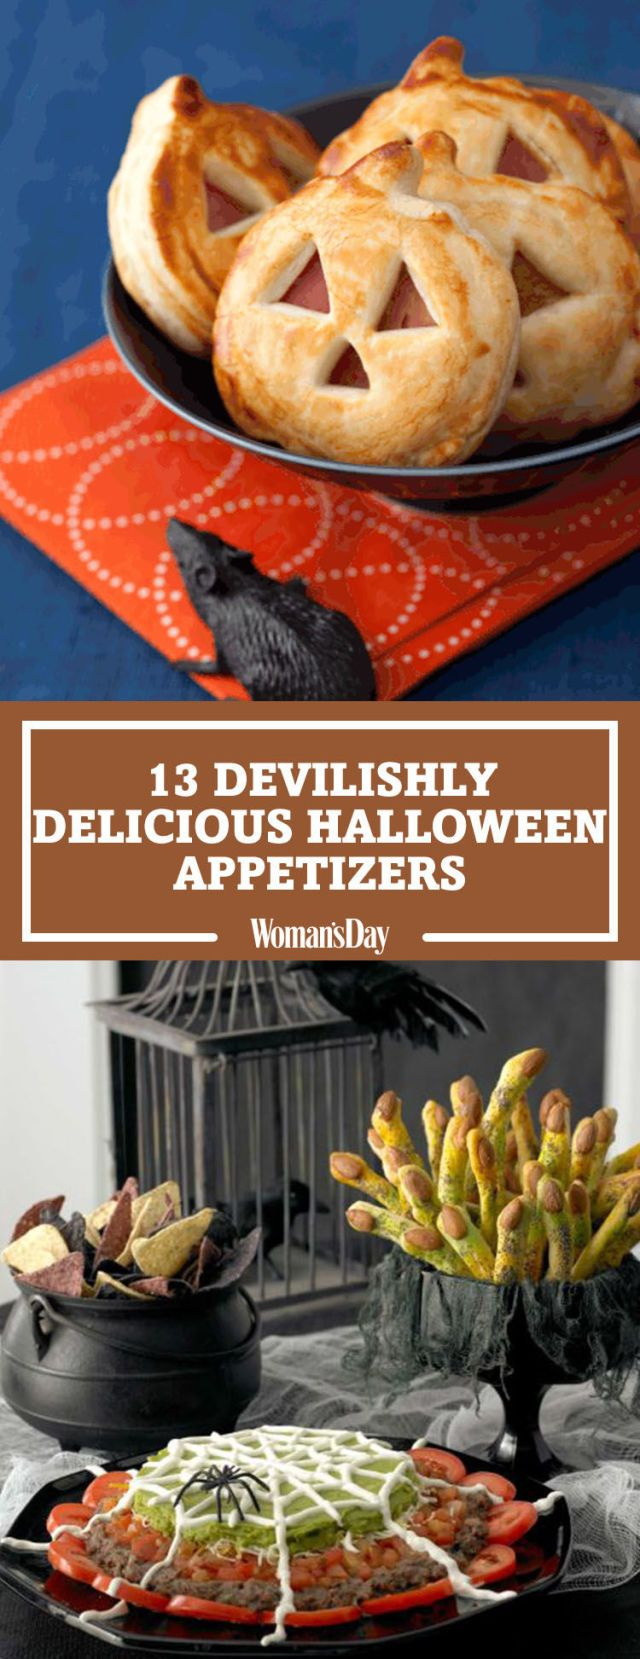 Save these halloween appetizer recipes for later by pinning this image and follow Woman's Day on Pinterest for more.